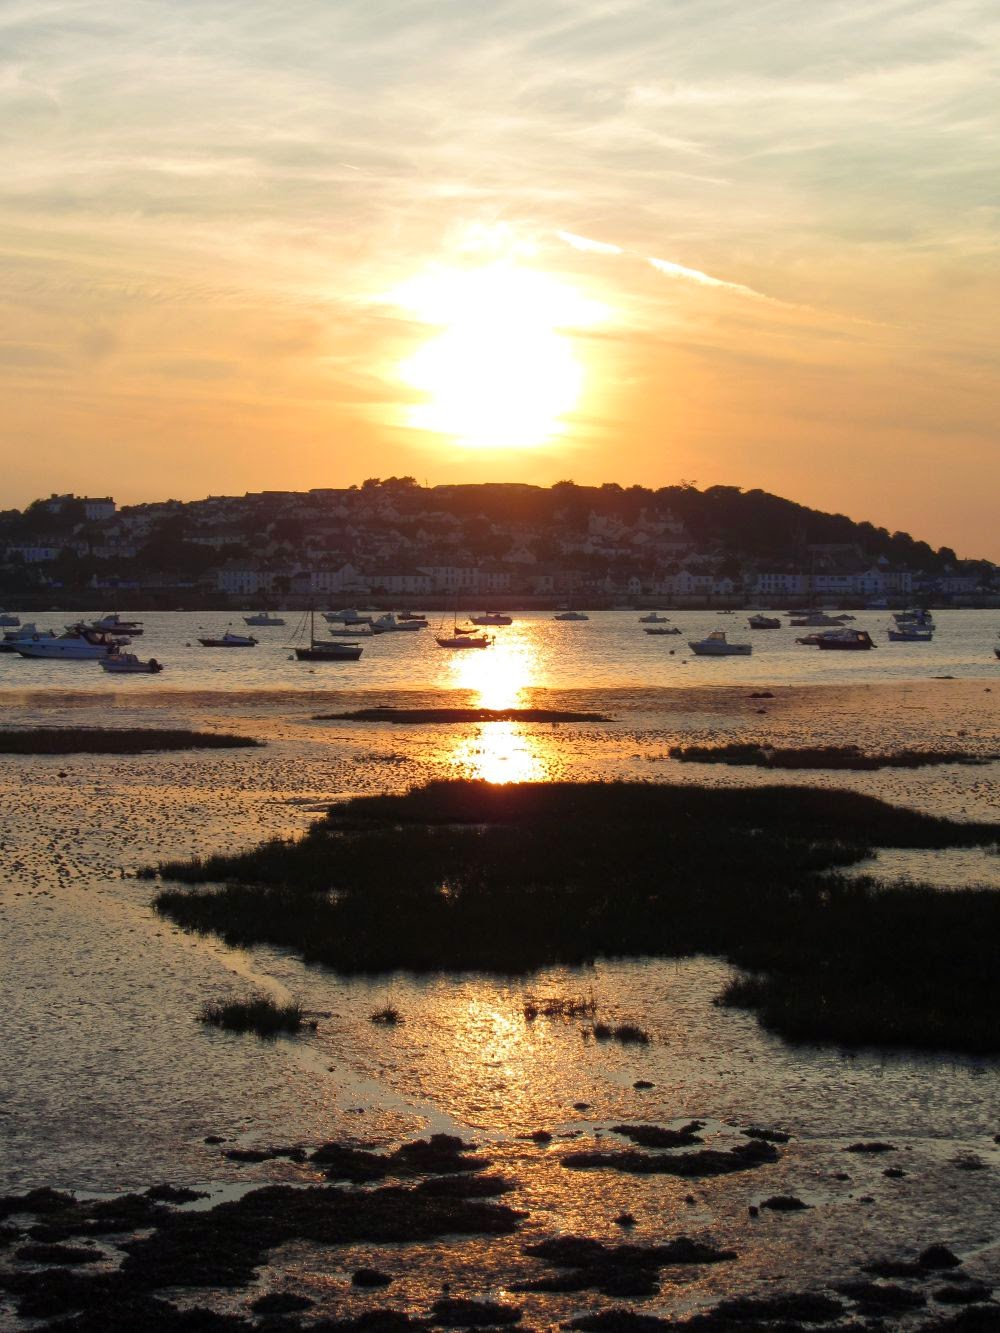 sunset at Instow, North Devon